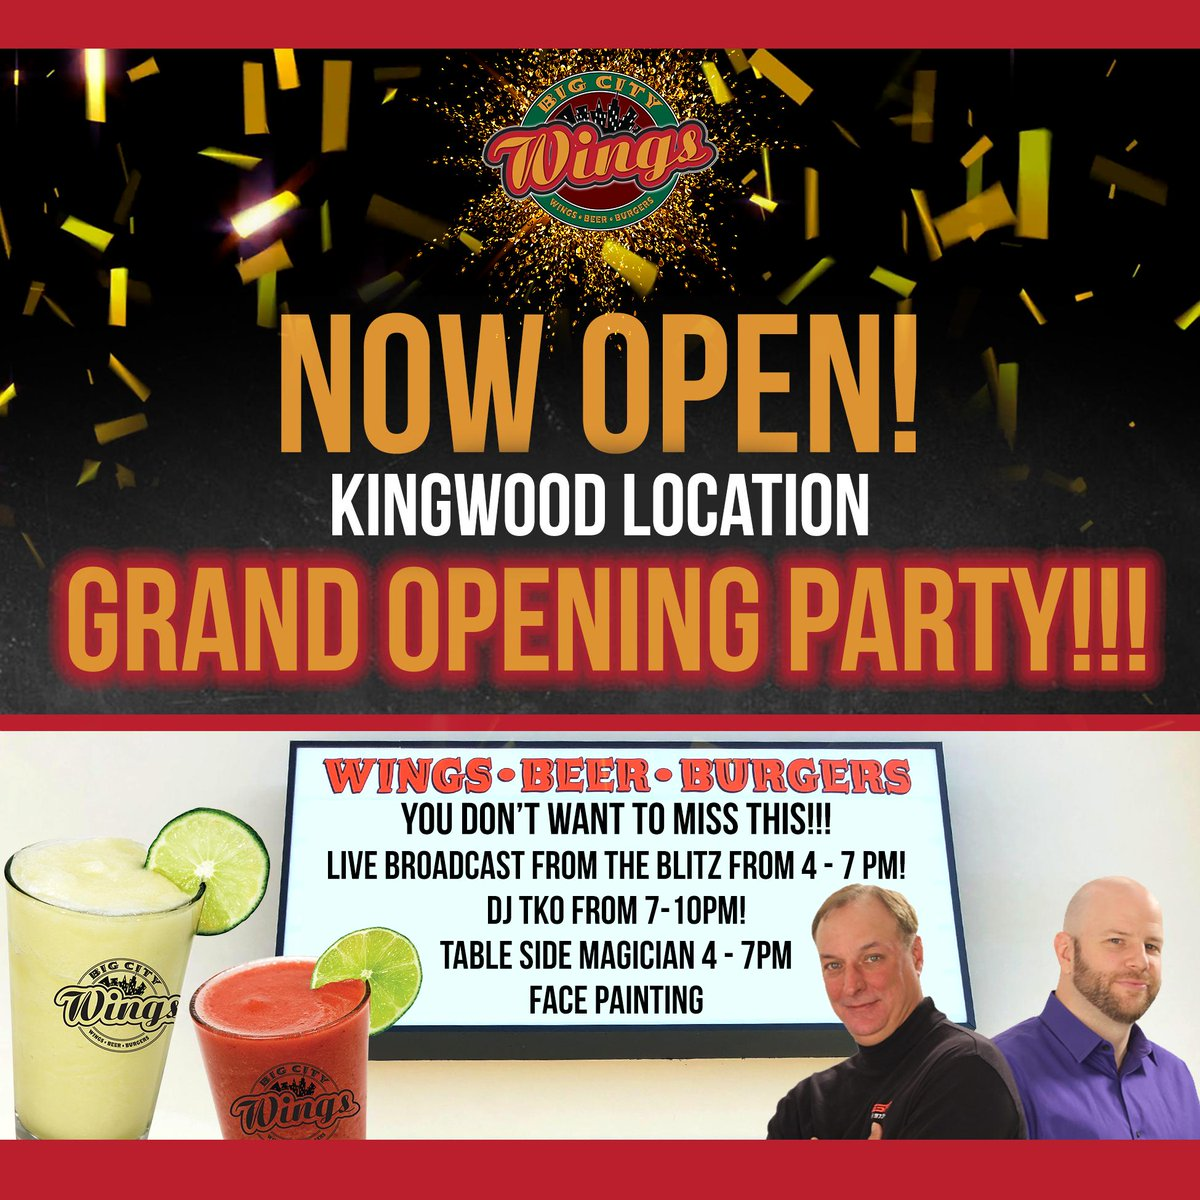 Kingwood Grand Opening Party TONIGHT, Friday 2/22! 🎉 Join the fun with a live broadcast with AJ Hoffman & Fred Faour from The Blitz @espn975, a tableside magician, face painting for the kiddos, giveaways and DJ TKO.  📍1522 Kingwood Dr., Kingwood TX, 77339